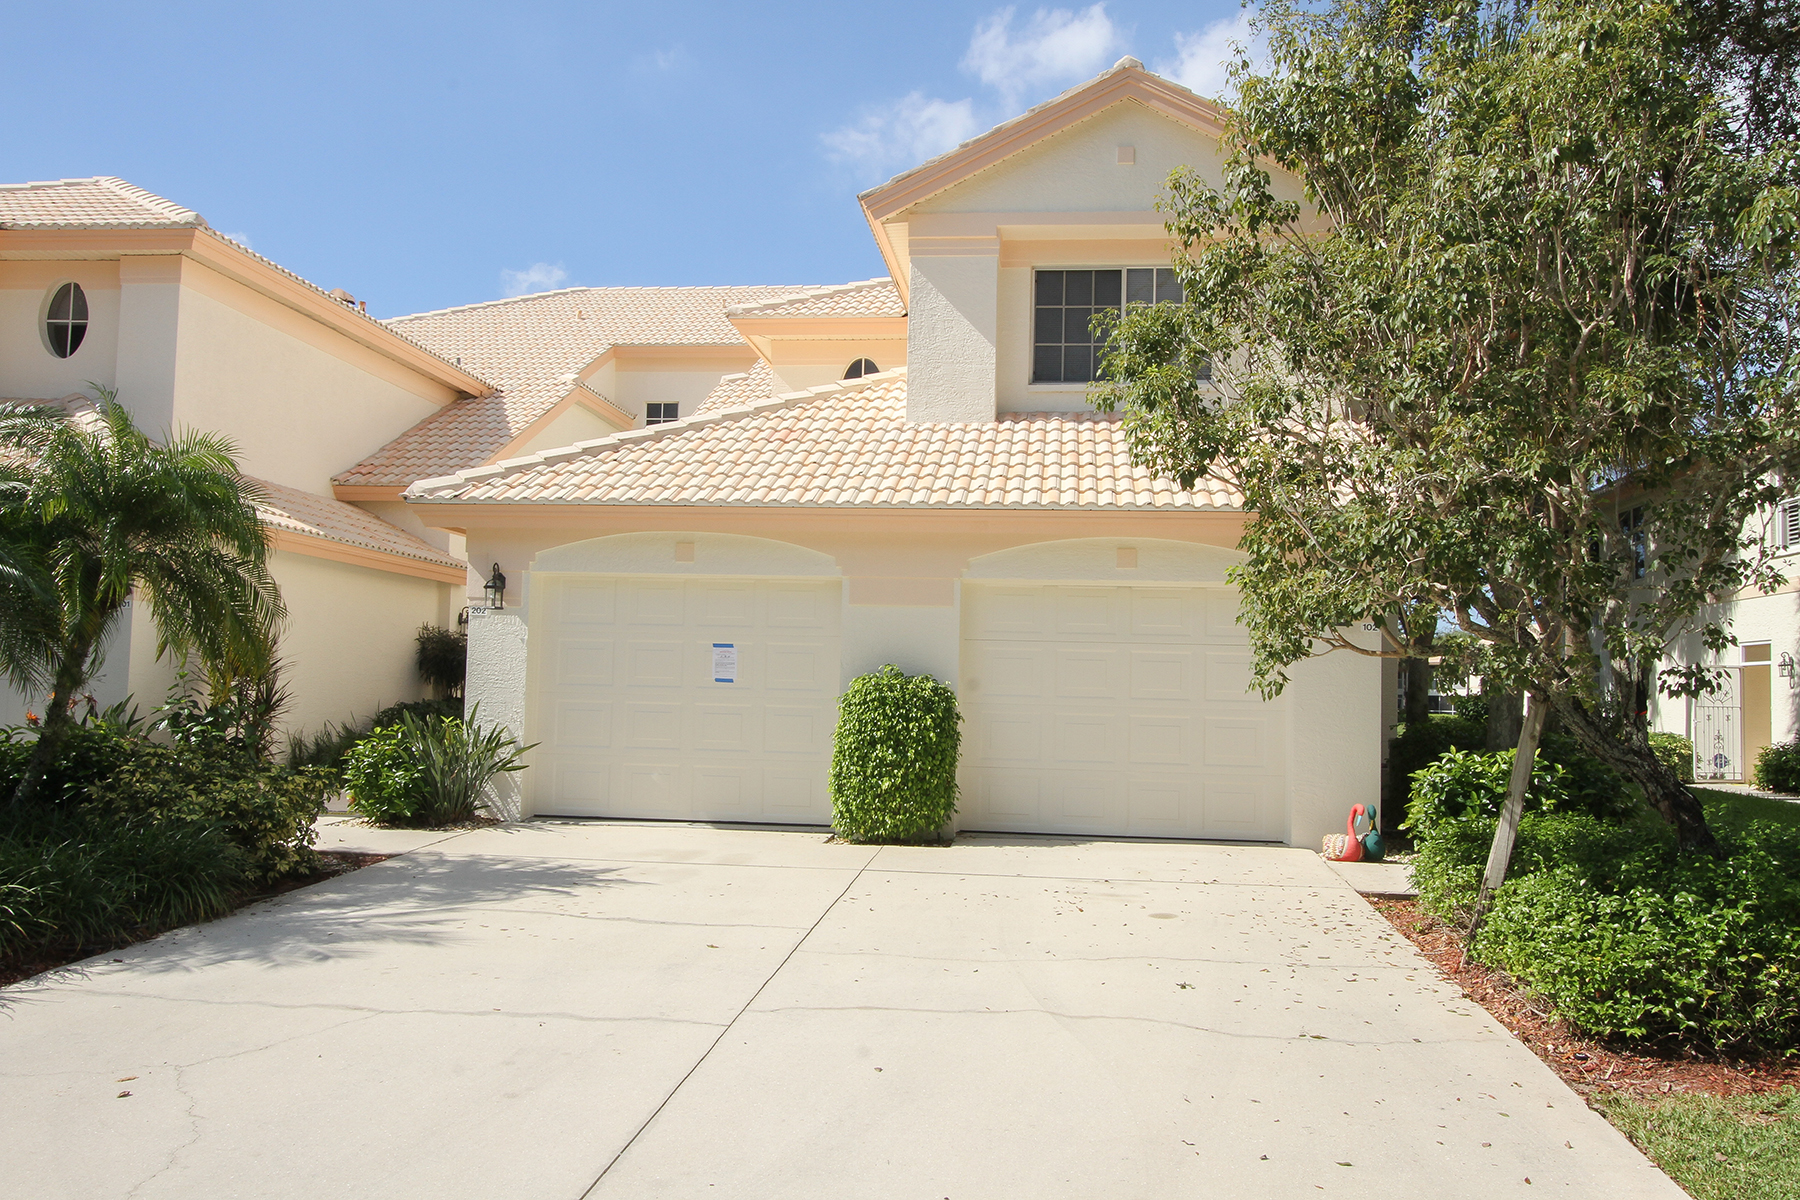 Condo / Townhome / Villa for Rent at 7714 Gardner Dr 102 Naples, Florida 34109 United States